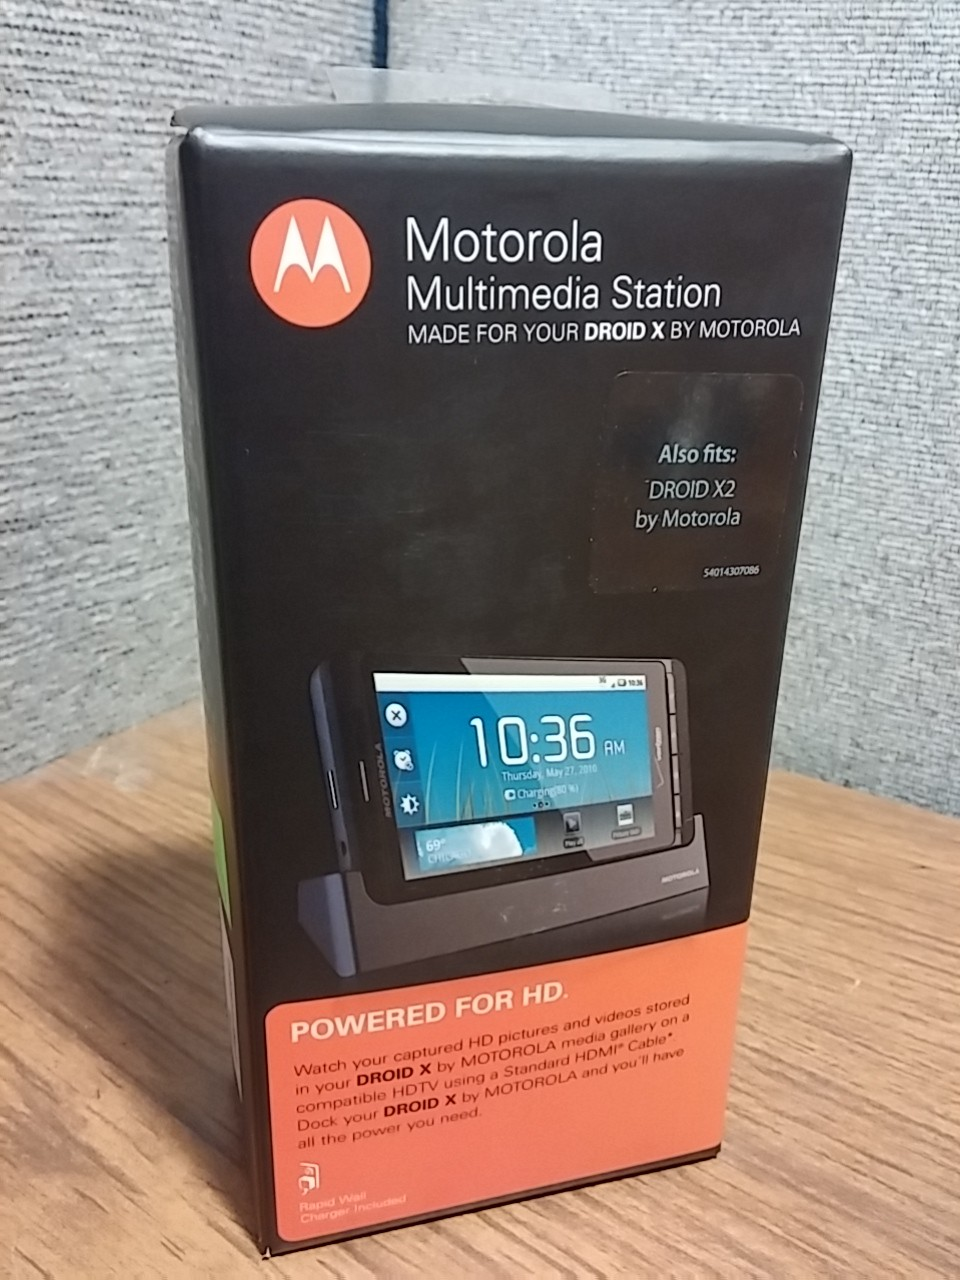 MOTOROLA MULTIMEDIA STATION HD DOCK FOR DROID X X2 INCLUDES WALL CHARGER NEW